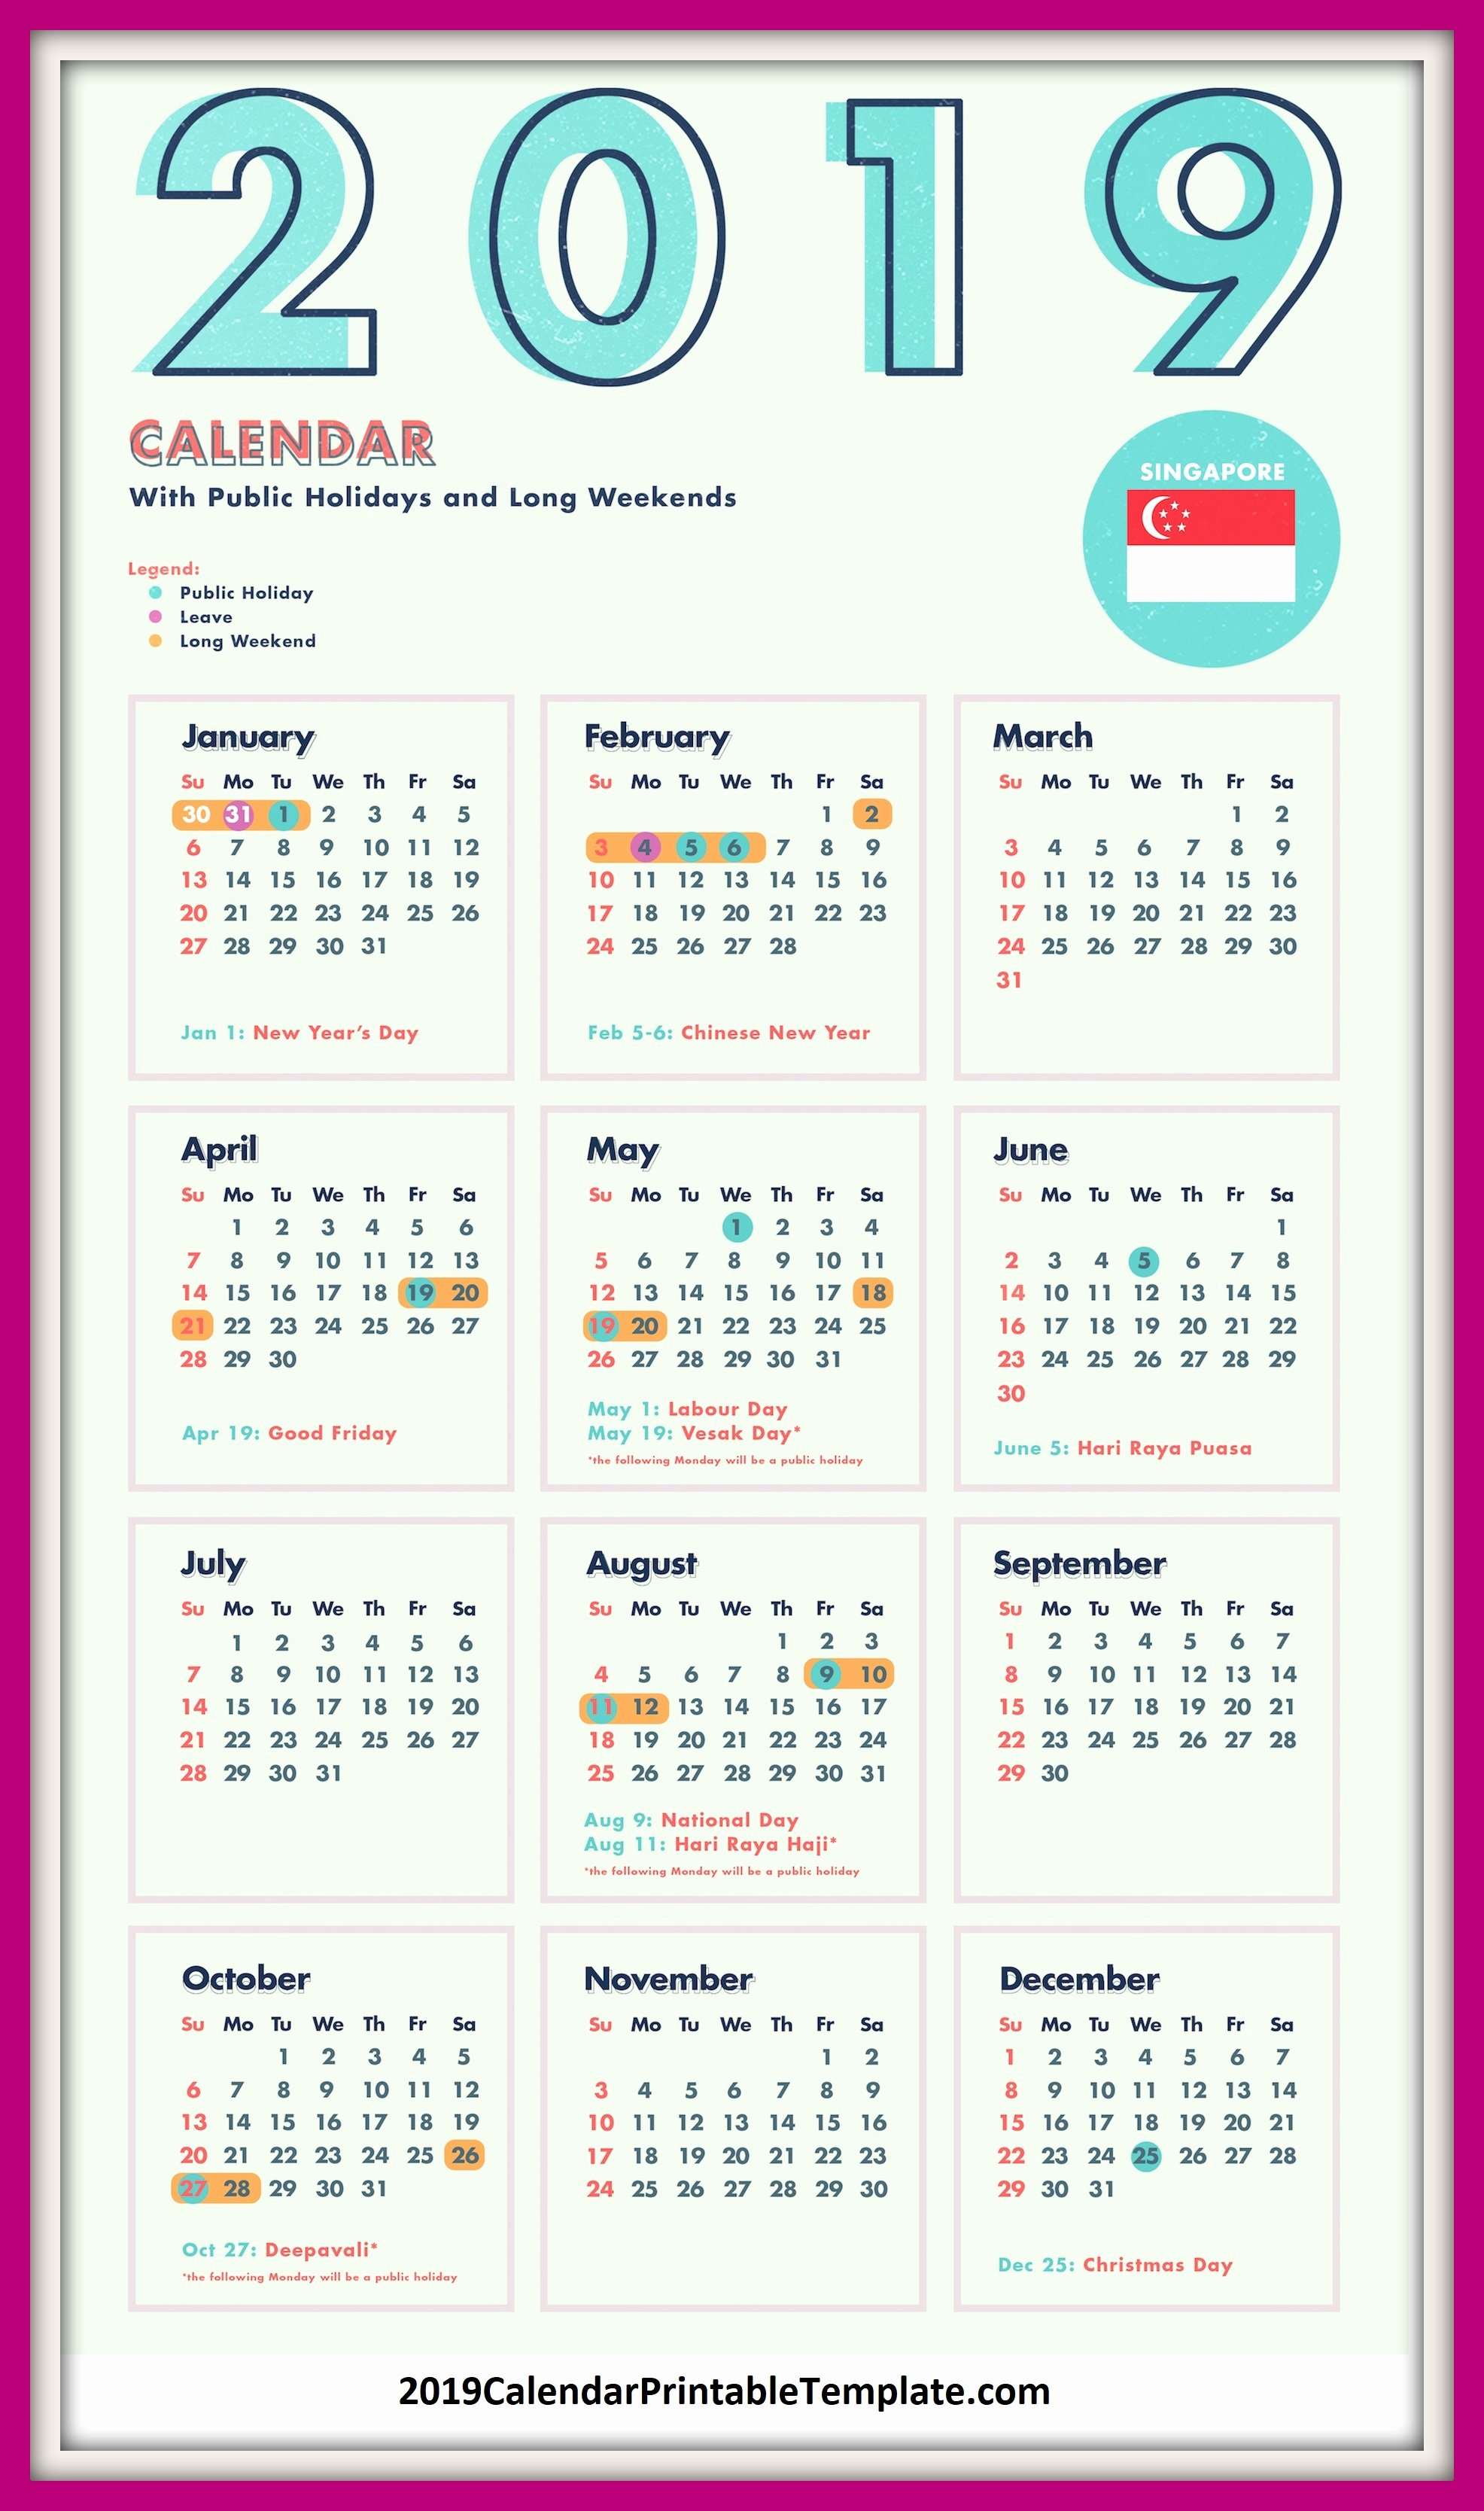 Golf Practice Schedule Template Lovely 2019 Calendar Singapore 2019 Calendar Printable Template